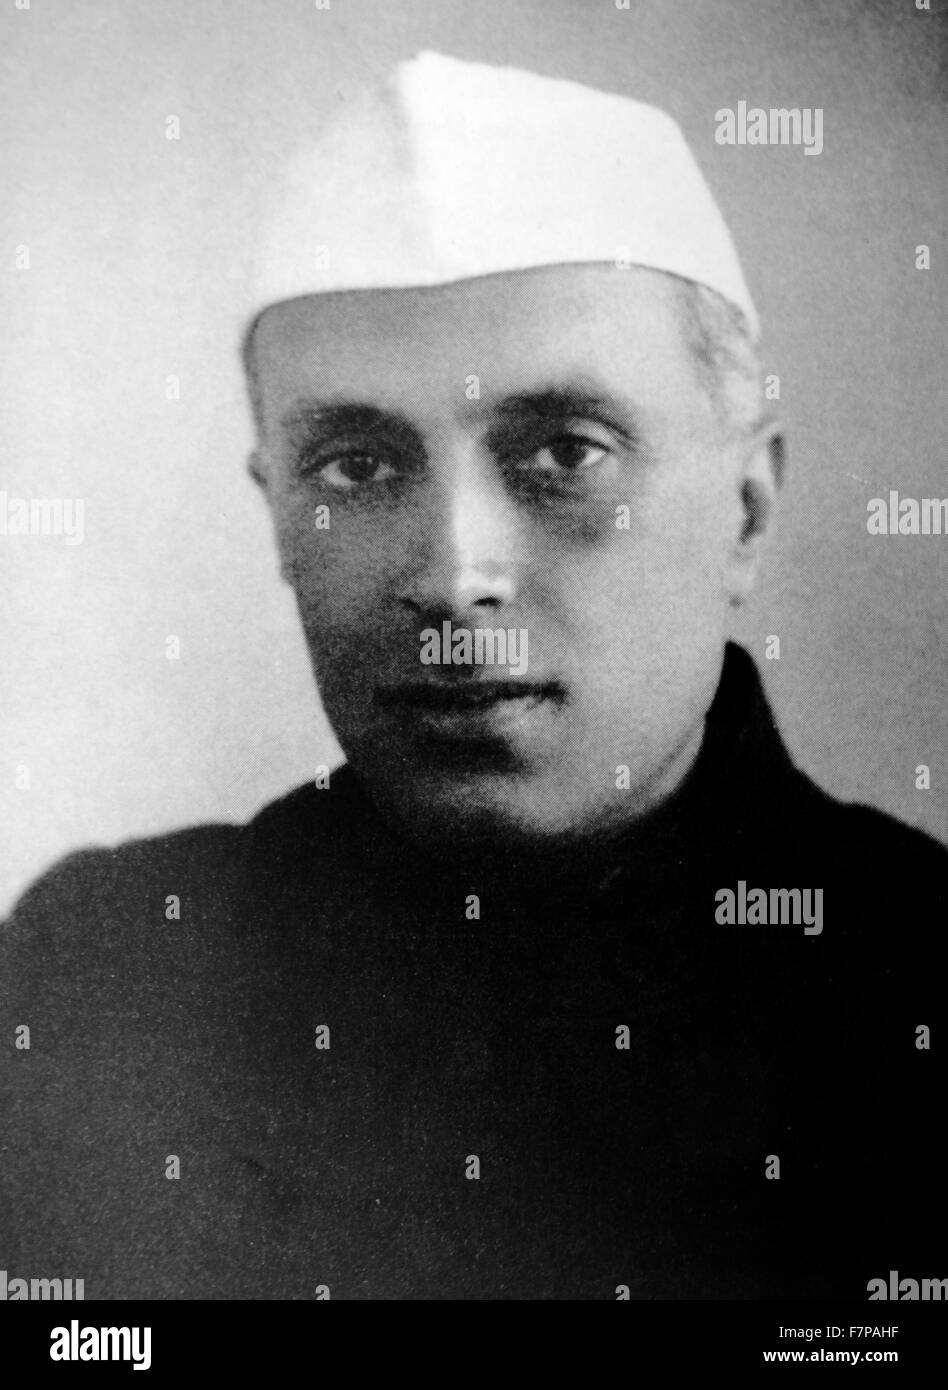 Jawaharlal Nehru 1889 – 1964. first Prime Minister of India and a central figure in Indian politics for much of - Stock Image